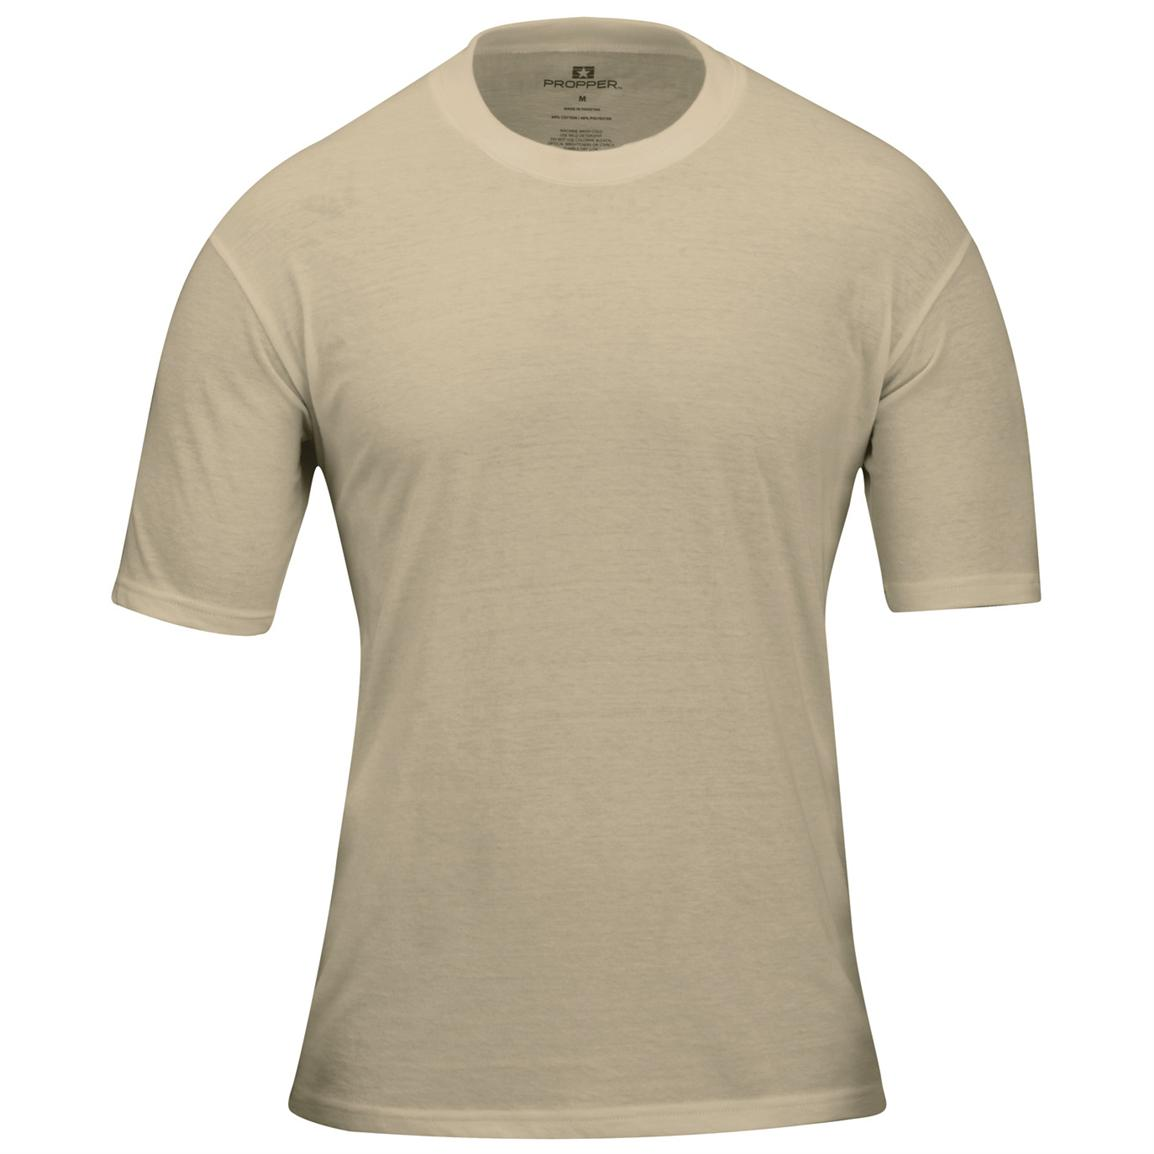 3-Pk. Men's Propper™ Pack 3™ T-shirts, Desert Sand